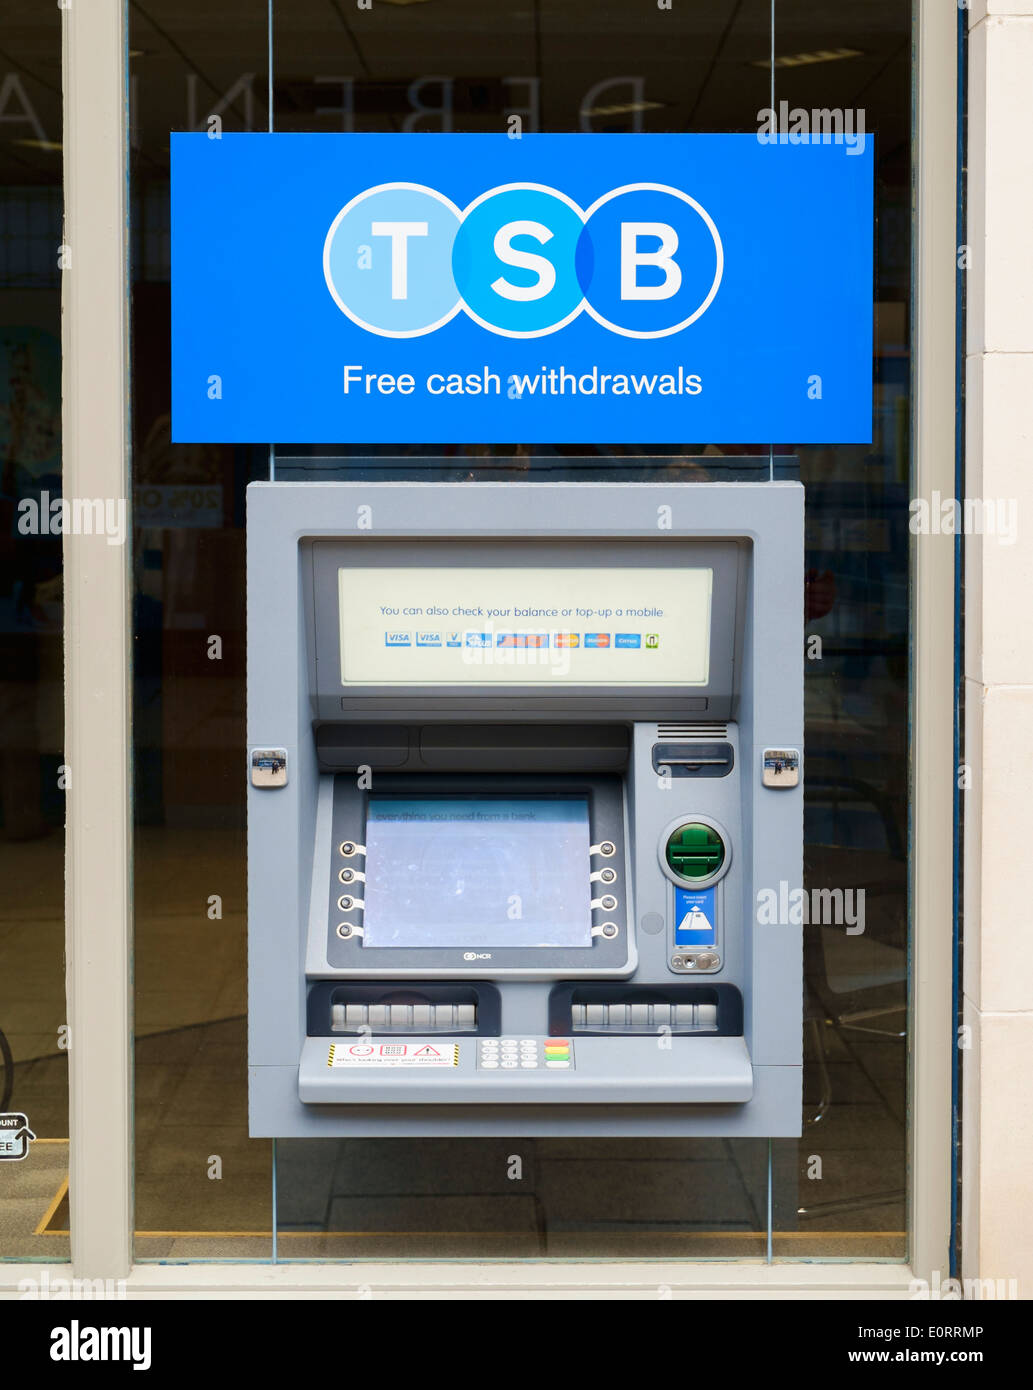 TSB bank ATM cashpoint, UK - Stock Image